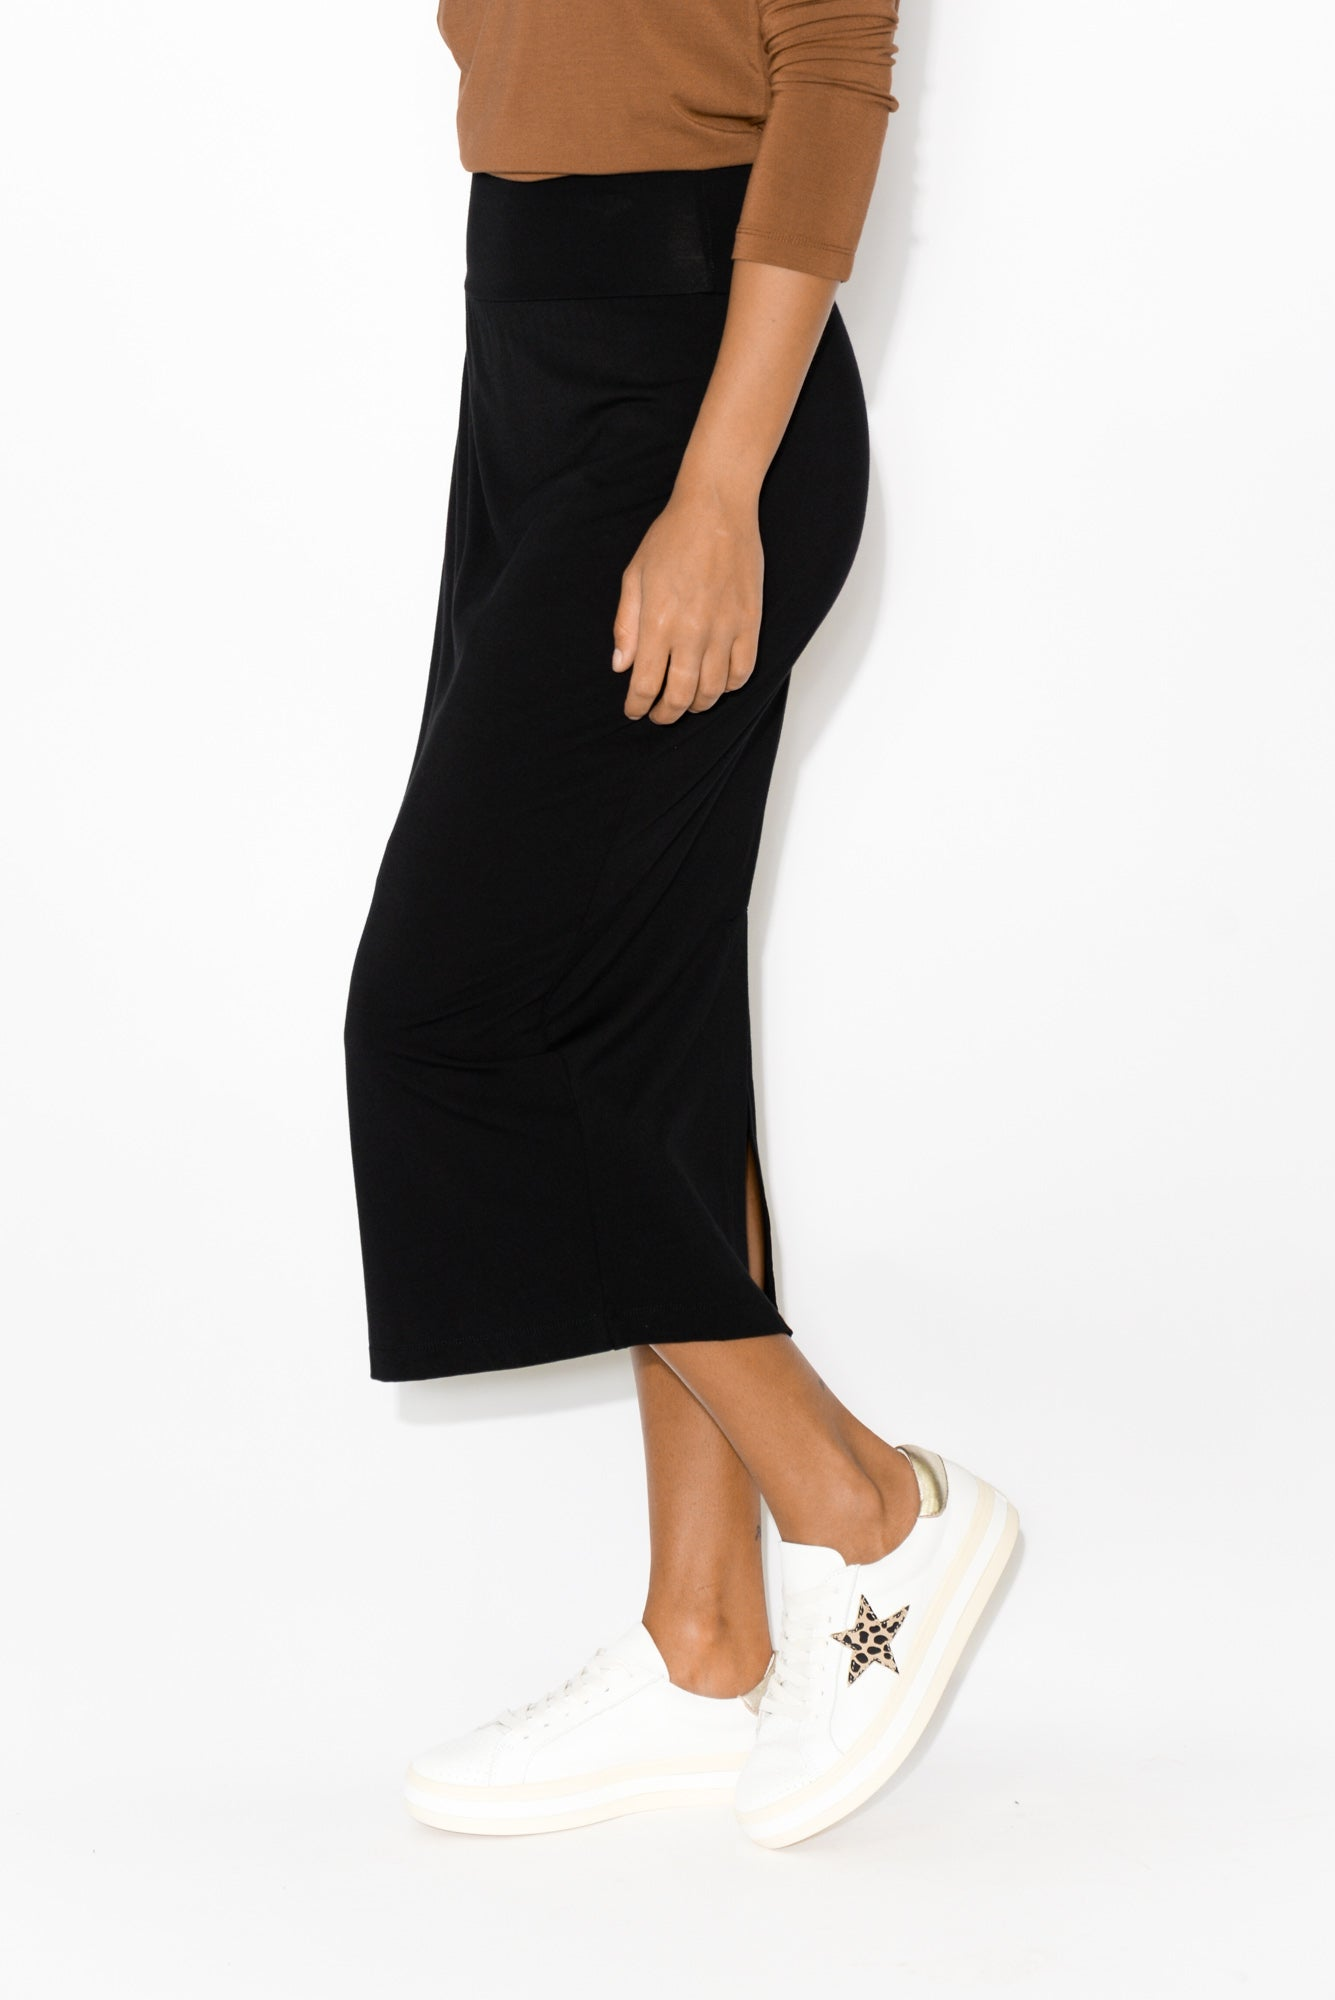 Black Bamboo Maxi Tube Skirt